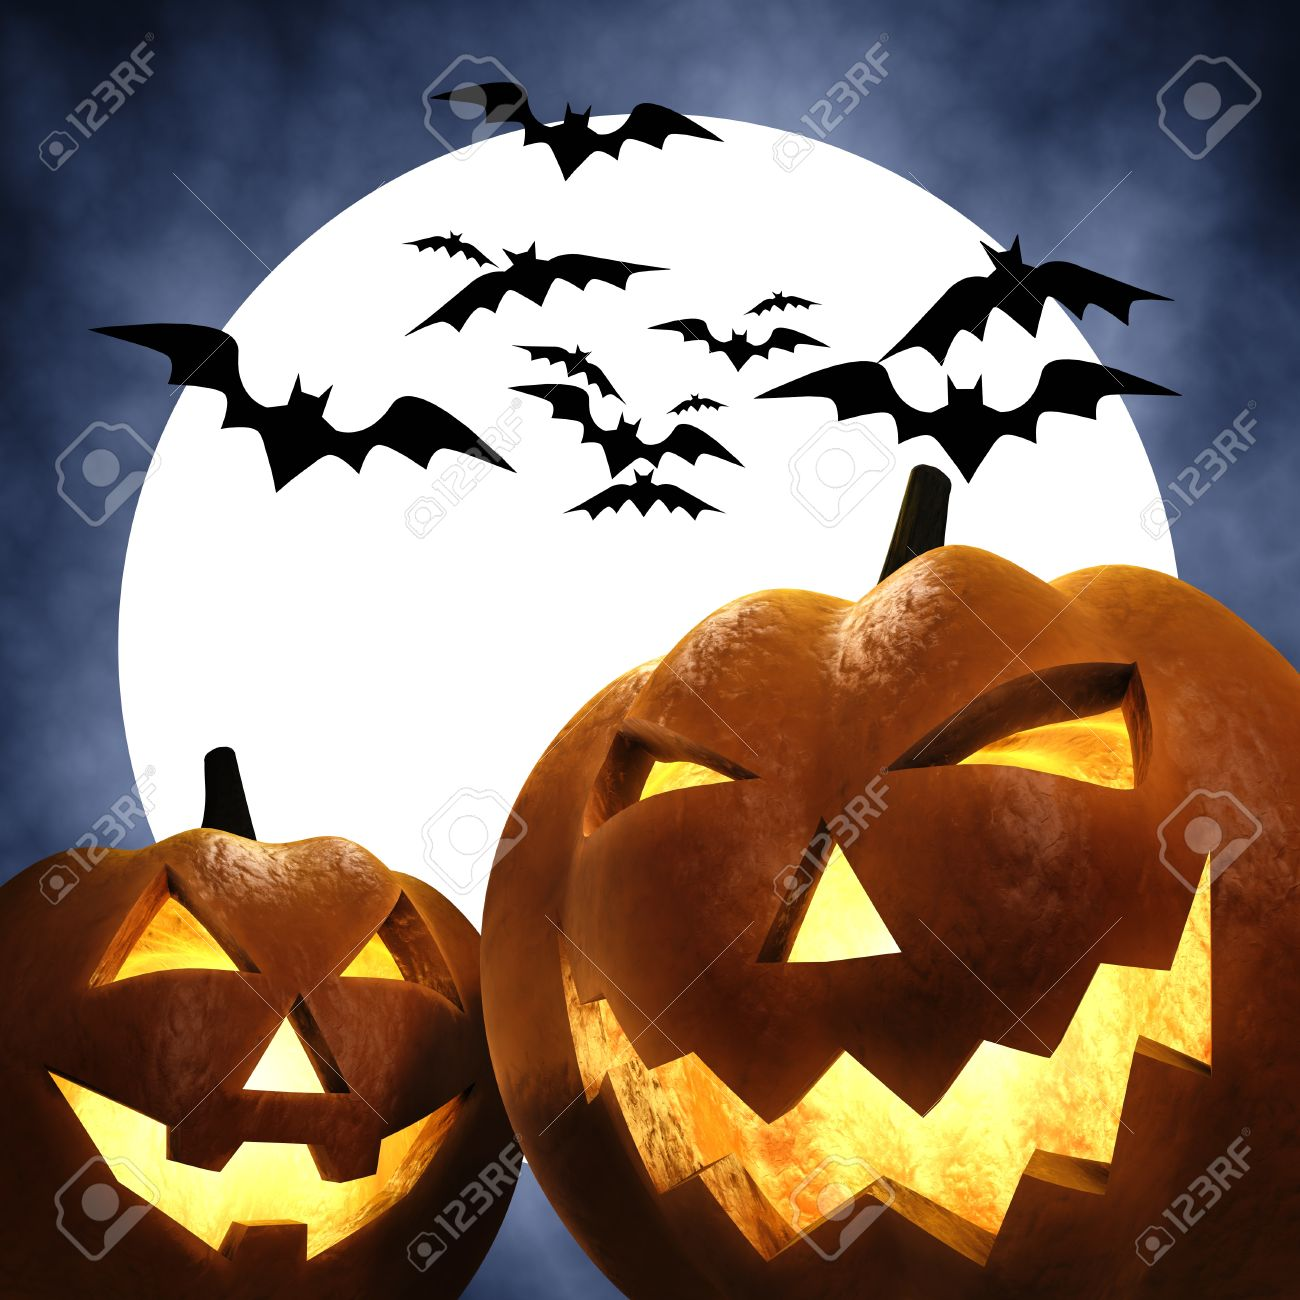 Halloween Scene , 3d Illustration Stock Photo, Picture And Royalty ...